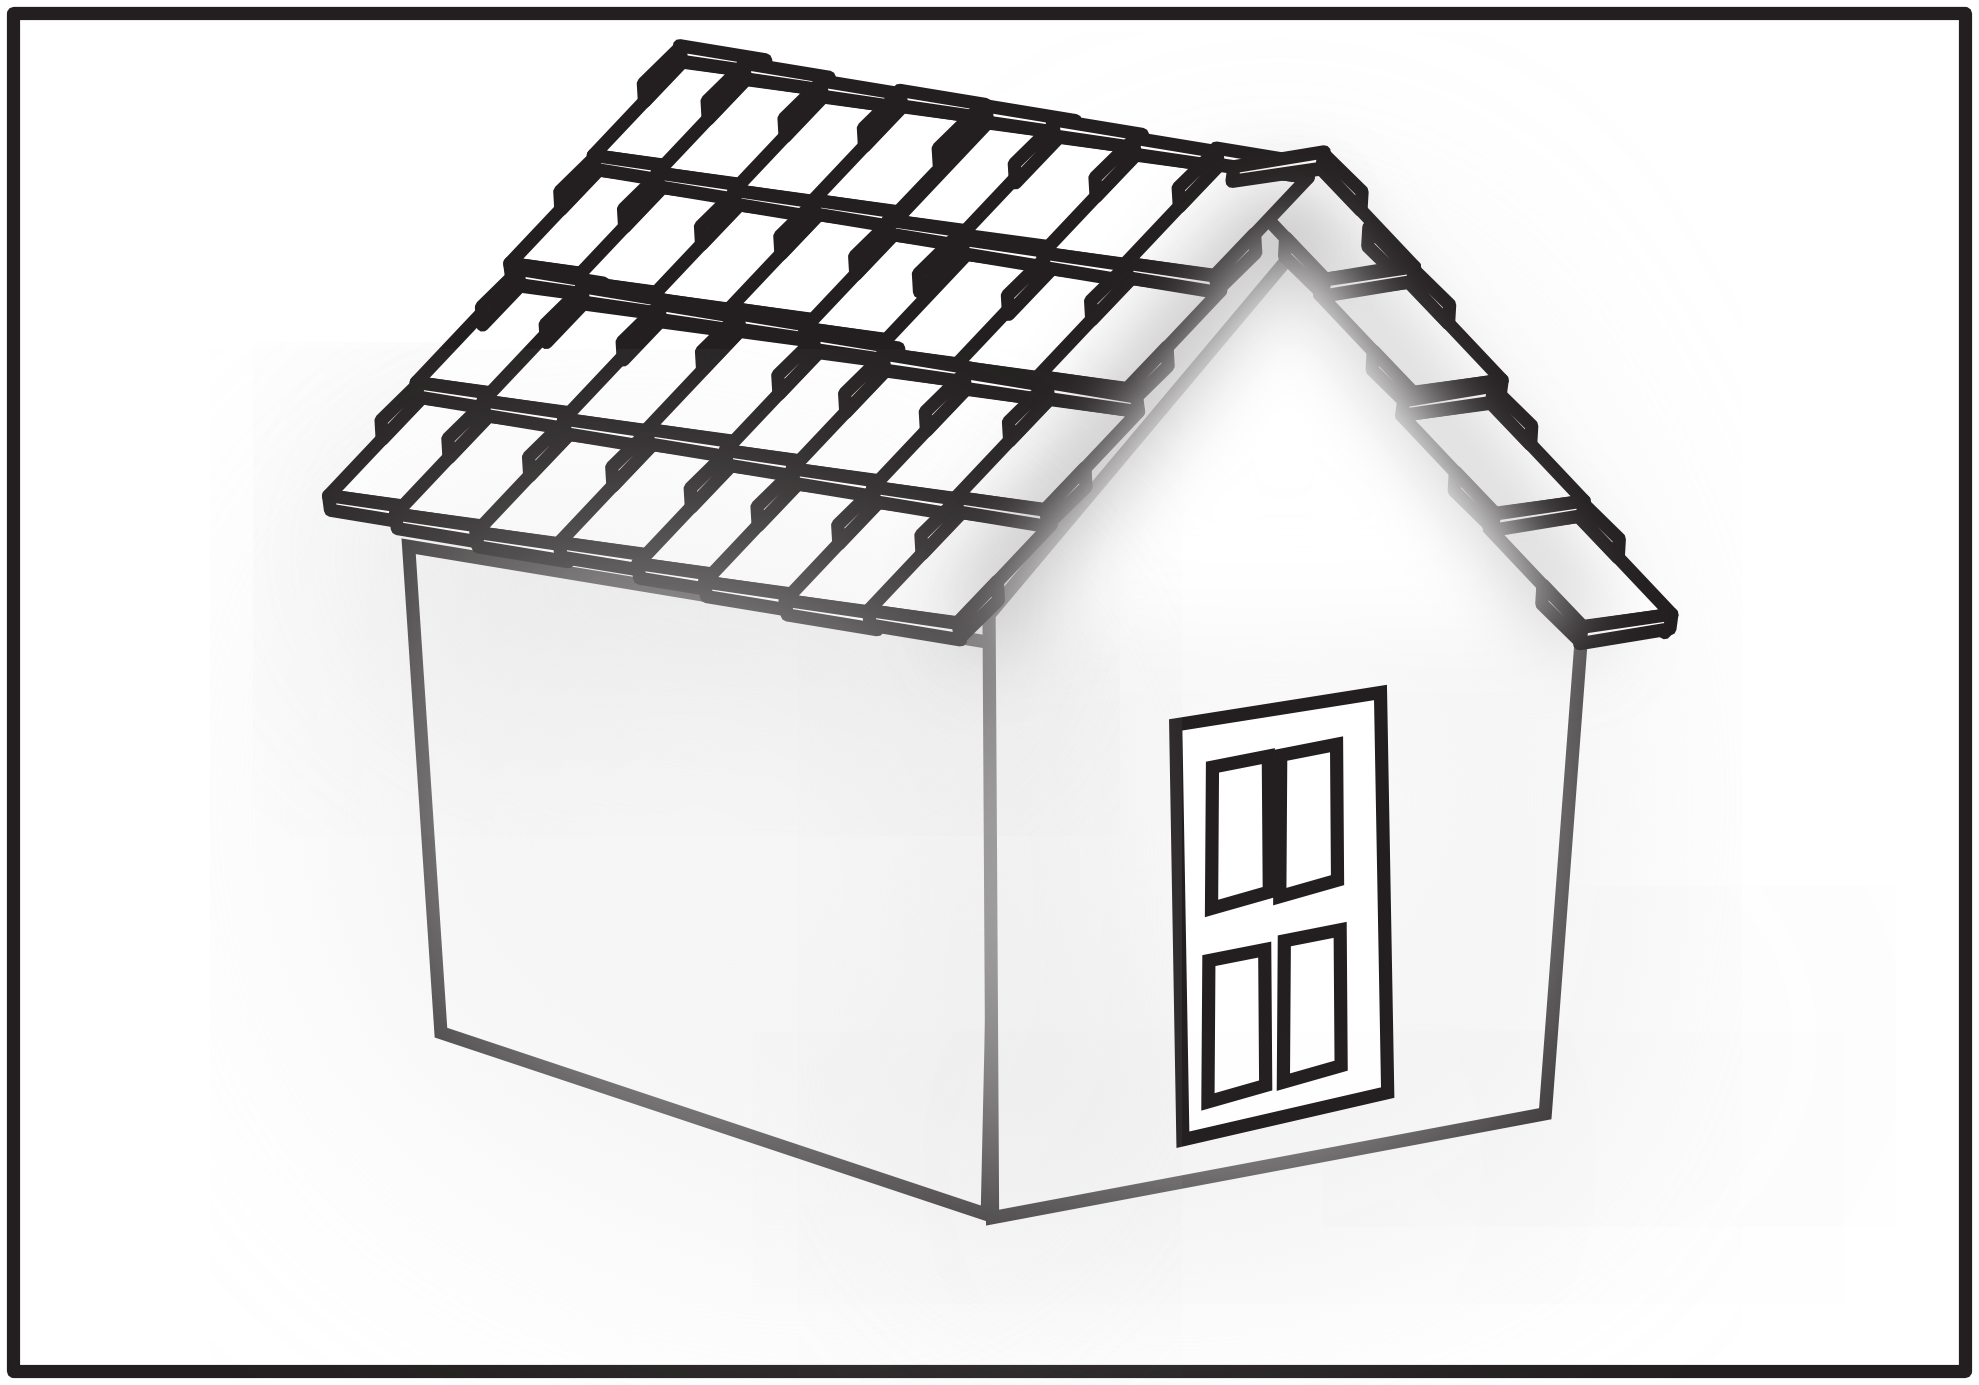 Line Art House Images : House tiled roof netalloy black white line art hunky dory